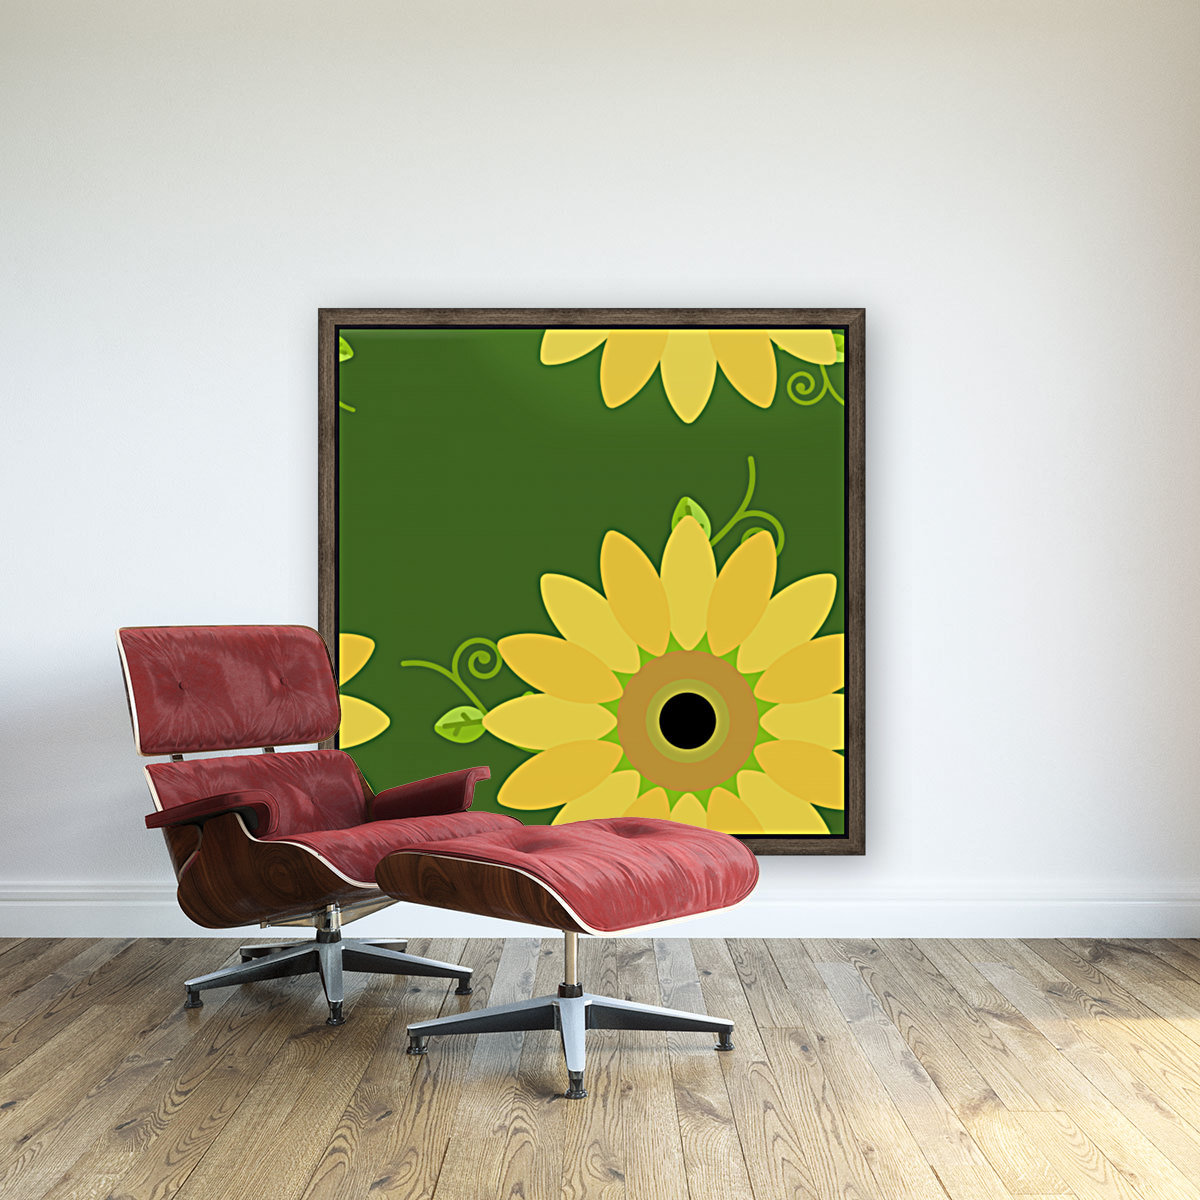 Sunflower (59)_1559876376.6225 with Floating Frame